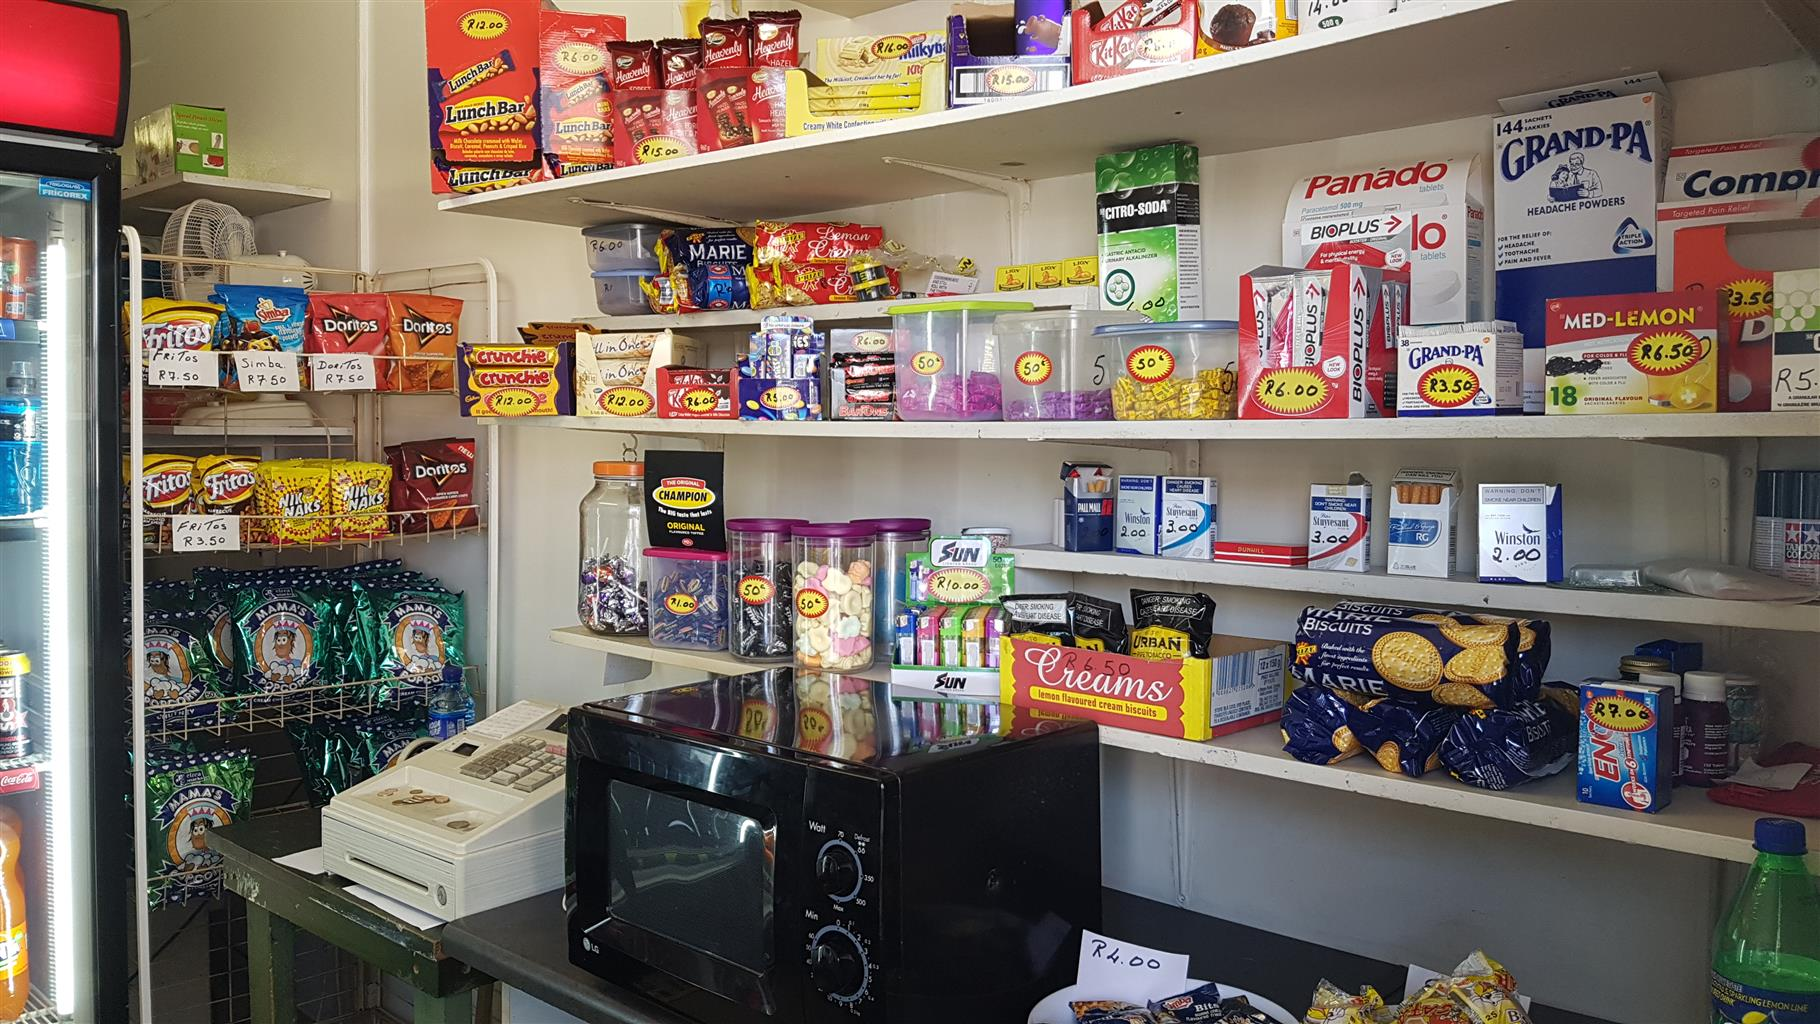 Take Away business for sale | Junk Mail